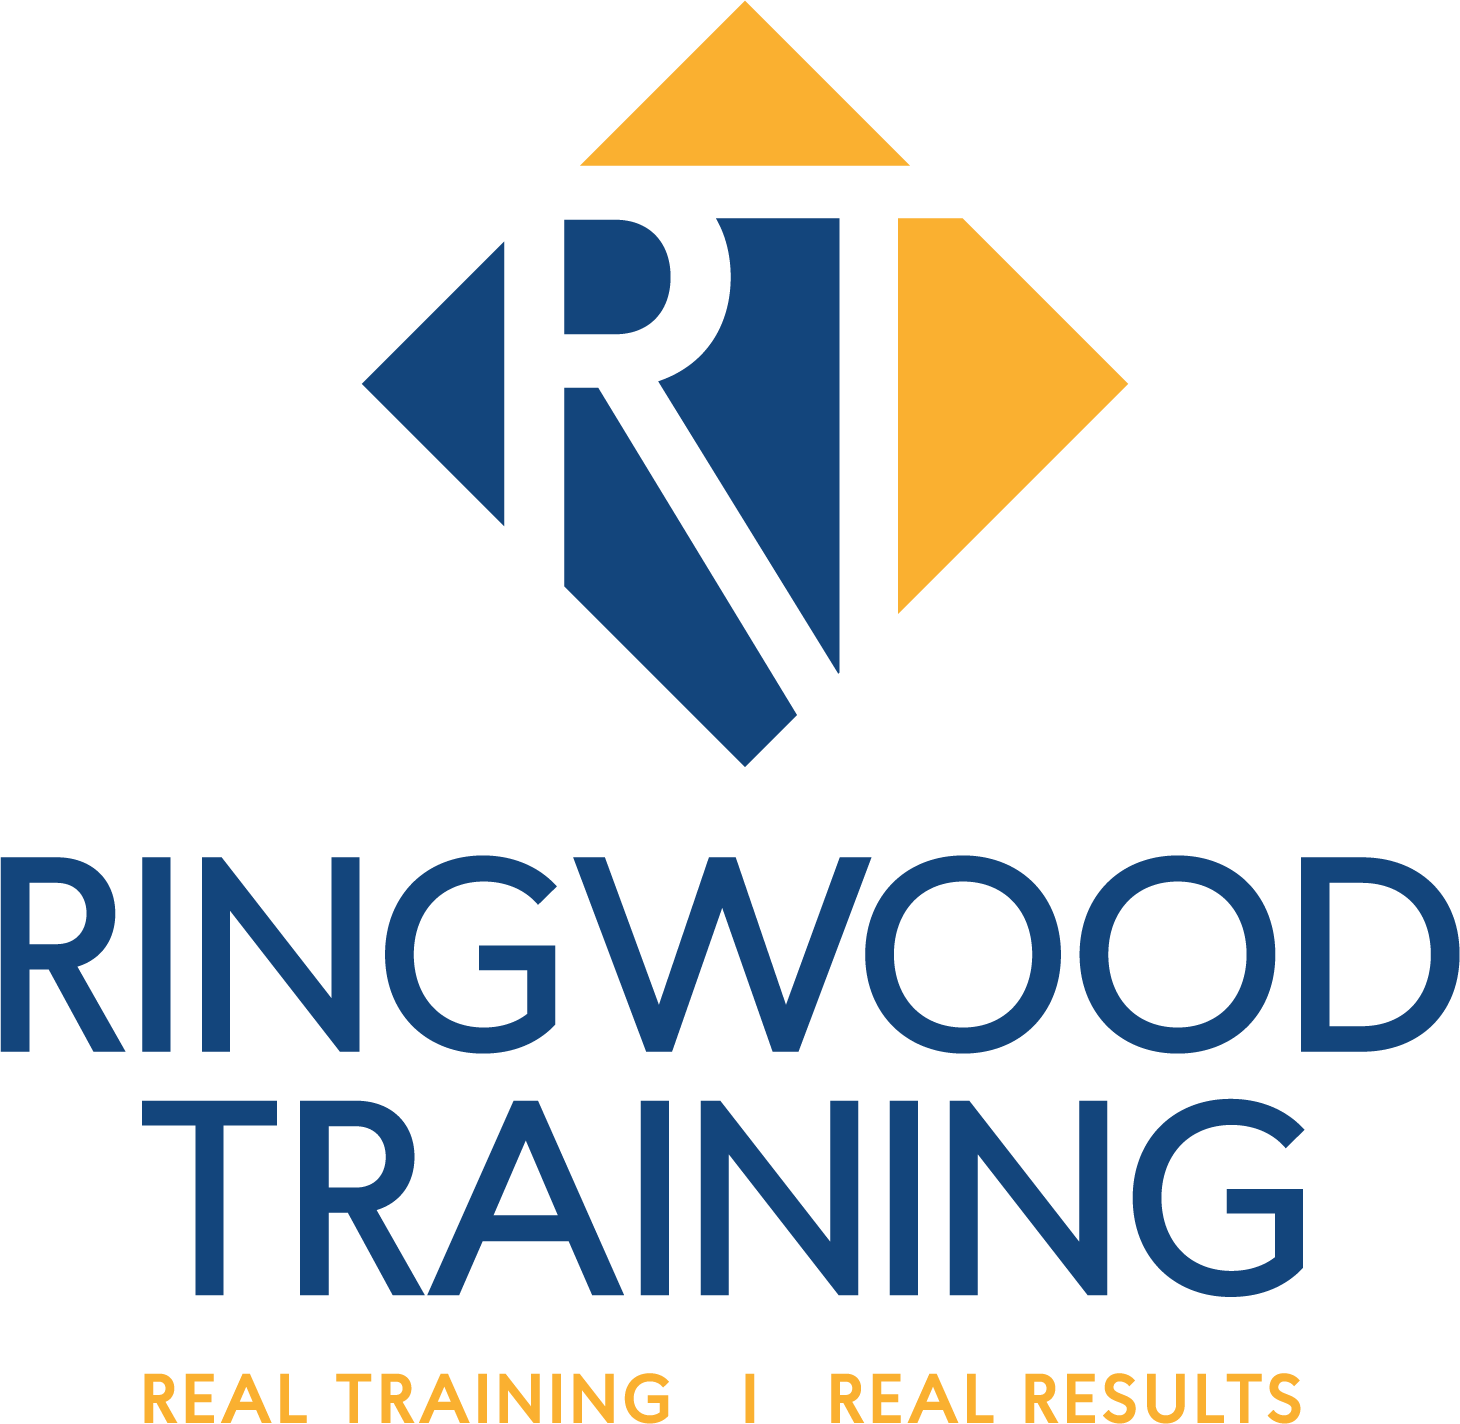 Meet The Staff - Ringwood Training - RT